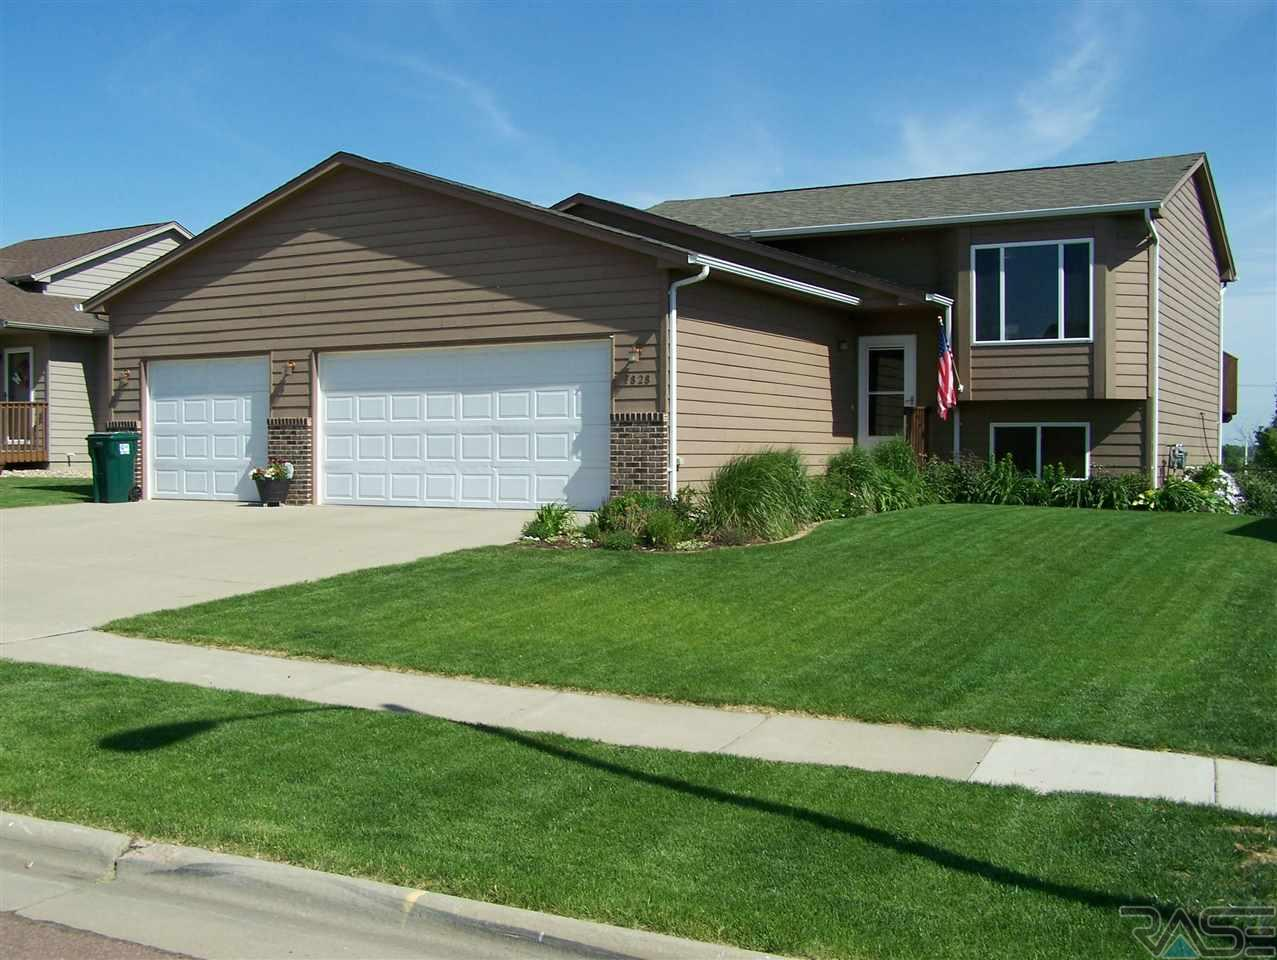 7828 W Browning St, Sioux Falls, SD 57106